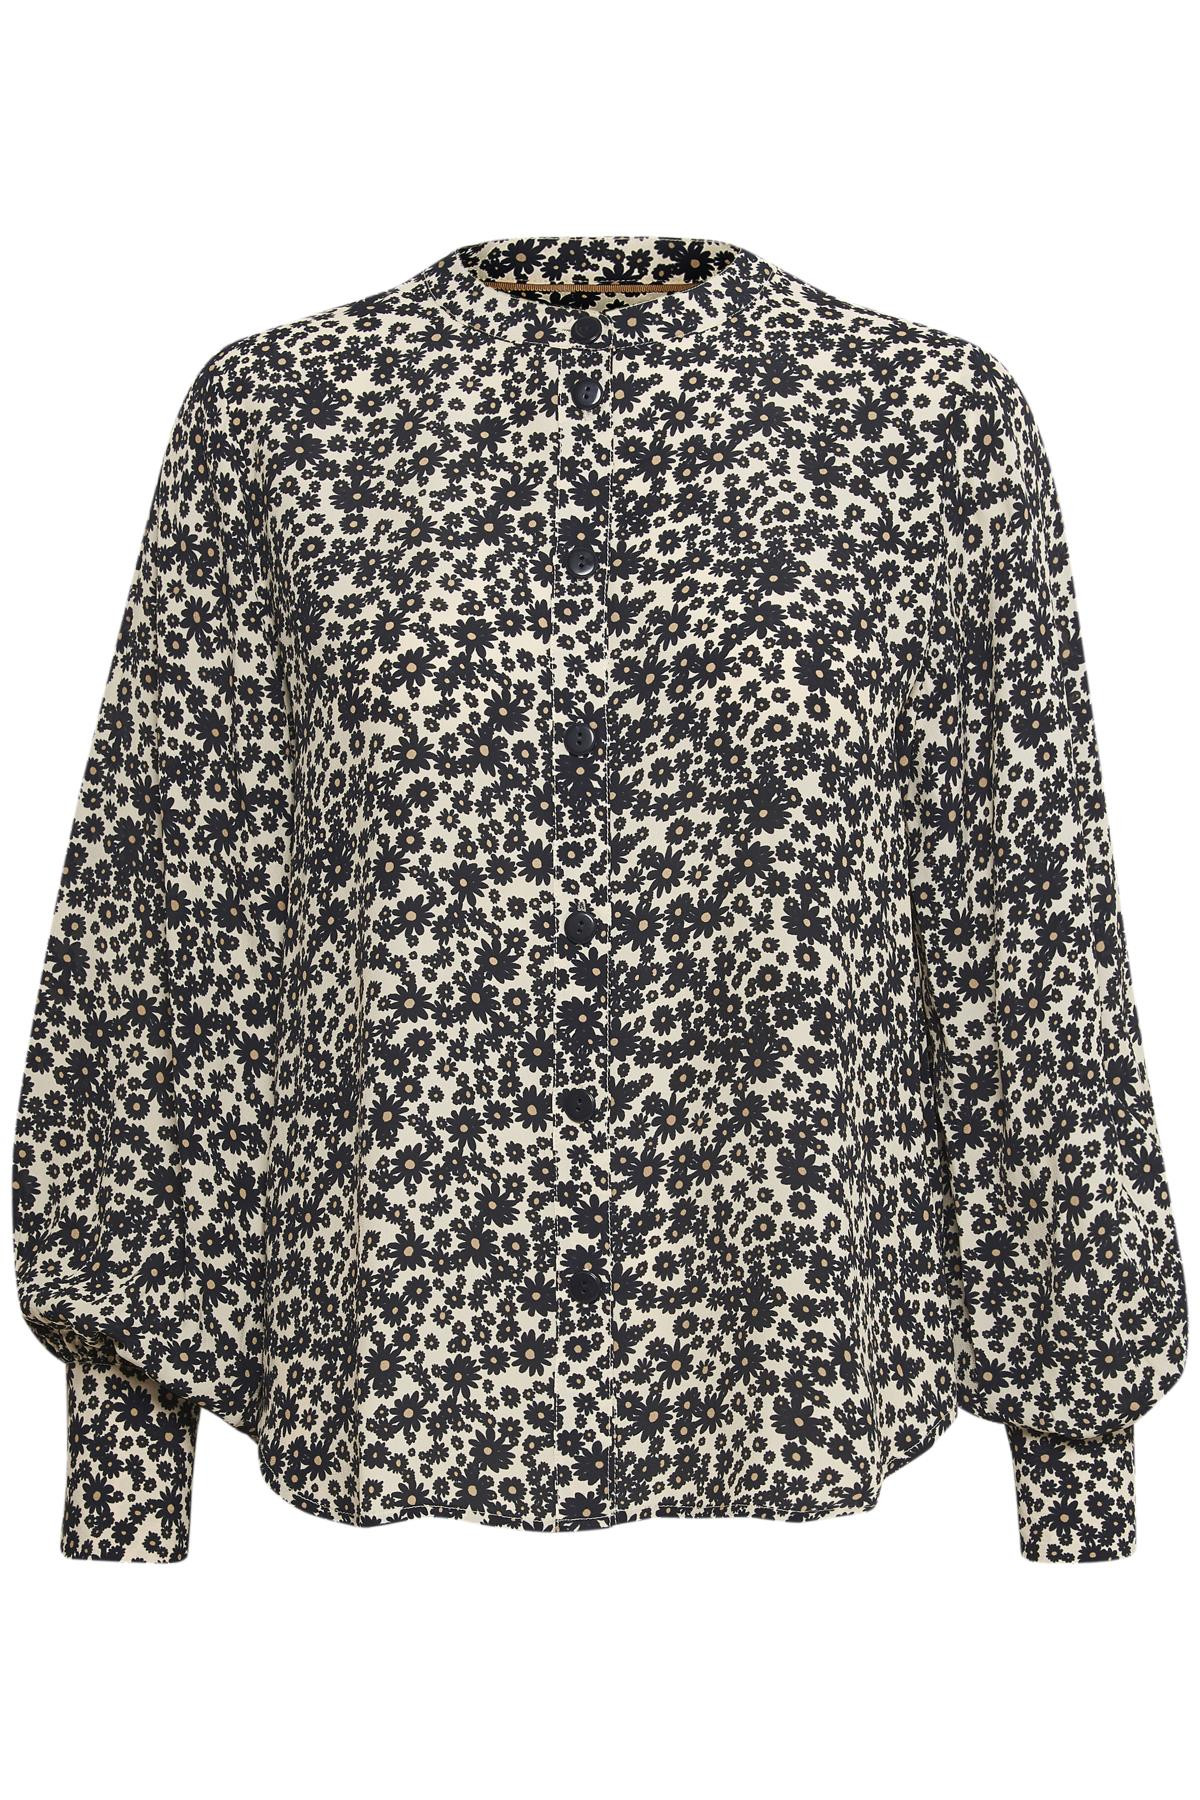 Image of   PART TWO BARBETTEPW BLOUSE 30304969 34181 (Flower Print 34181, 34)